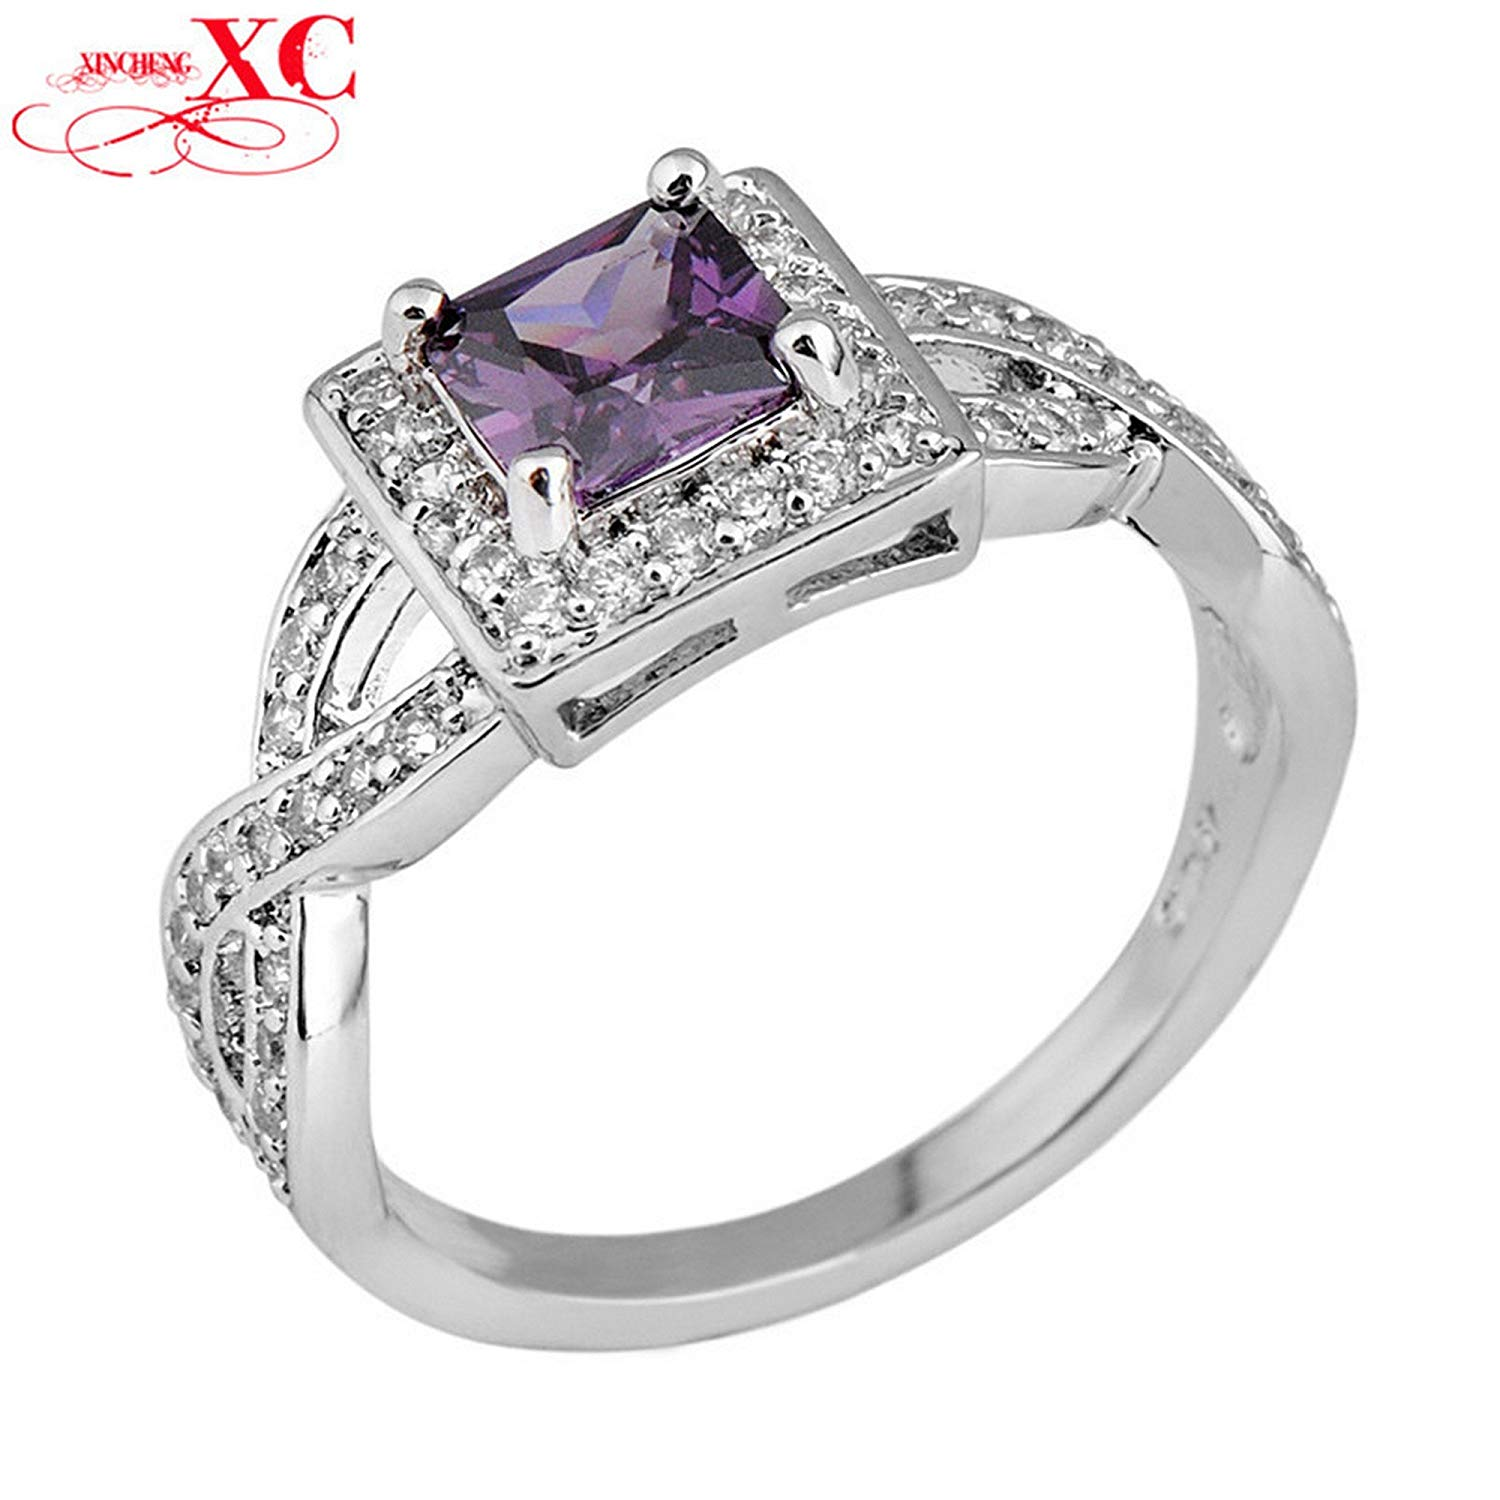 GDSHOP Princess Cut Amethyst Vintage Jewelry Women Ring Anel Aneis Size 6-10 White Gold Filled Purple Sapphire Engagement Rings